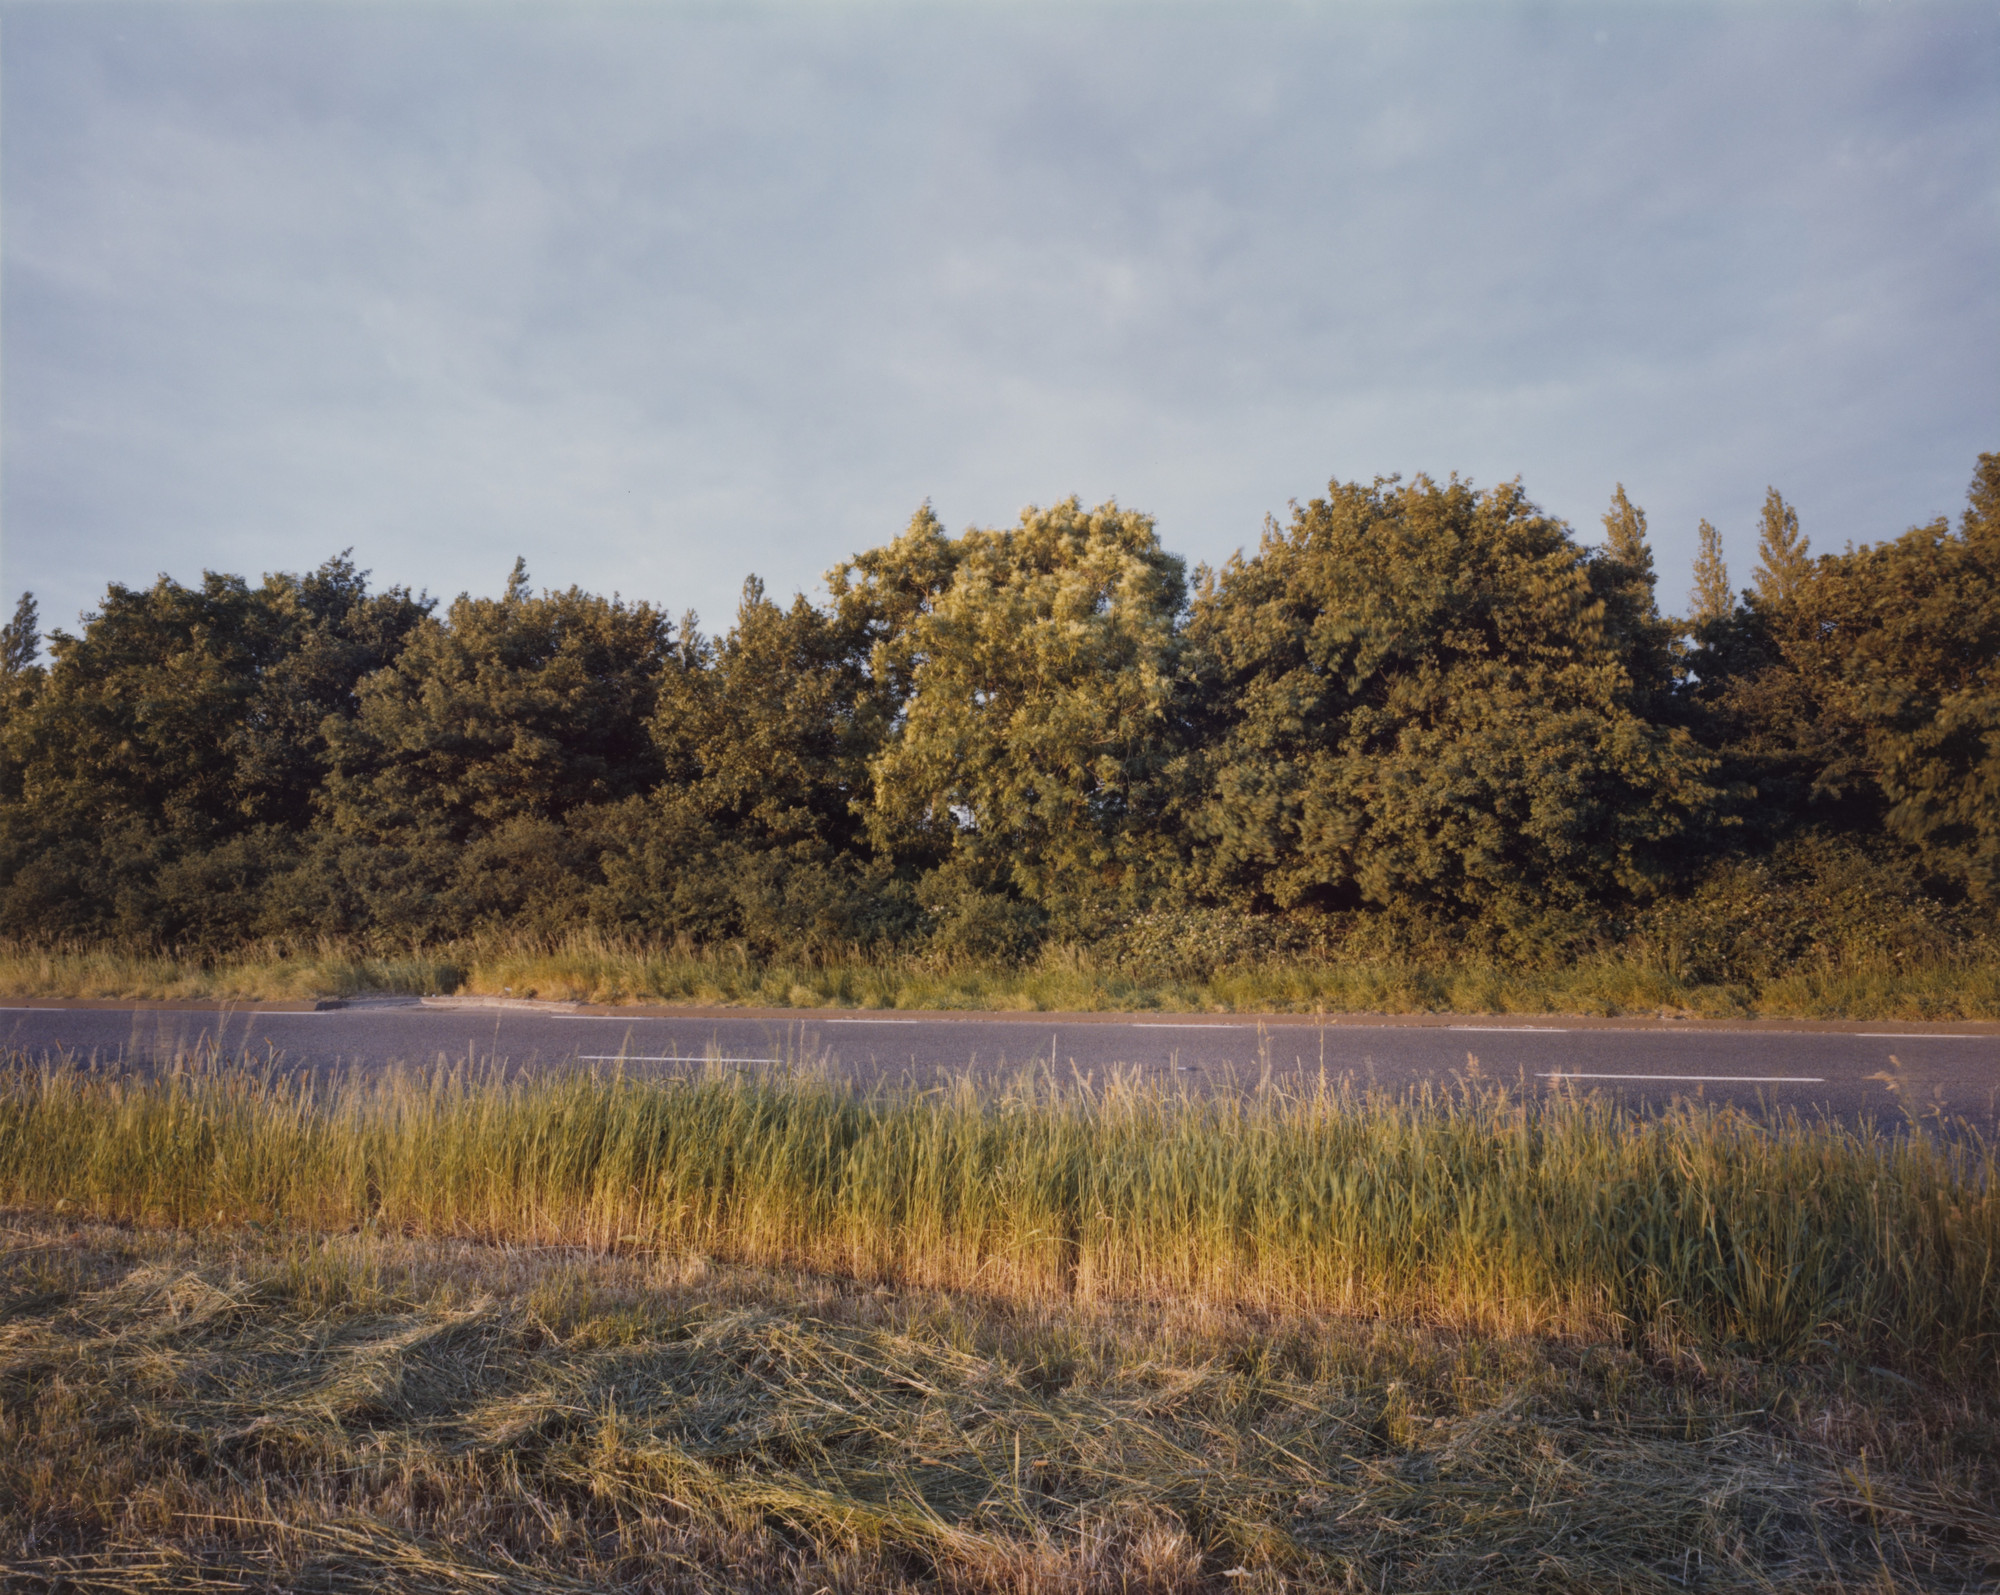 Paul Graham. Hedge in Wind, Bedfordshire from the portfolio A1: The Great North Road. June 1982